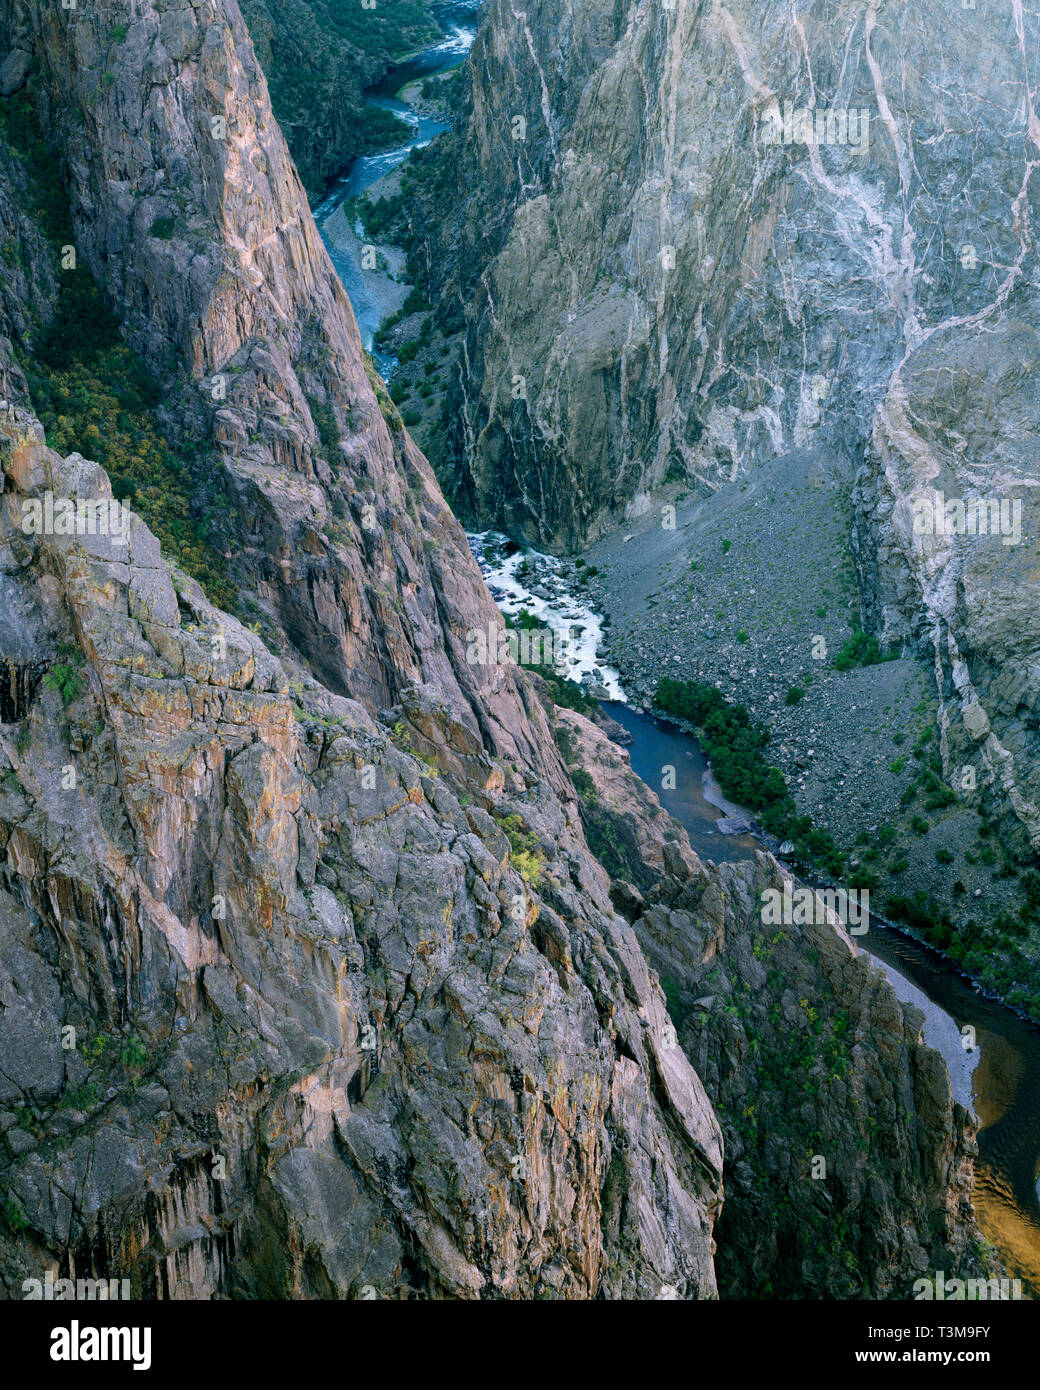 USA, Colorado, Black Canyon of the Gunnison National Park, Gunnison River and bands of of pegmatite granite intrusions at the base of the Painted Wall - Stock Image